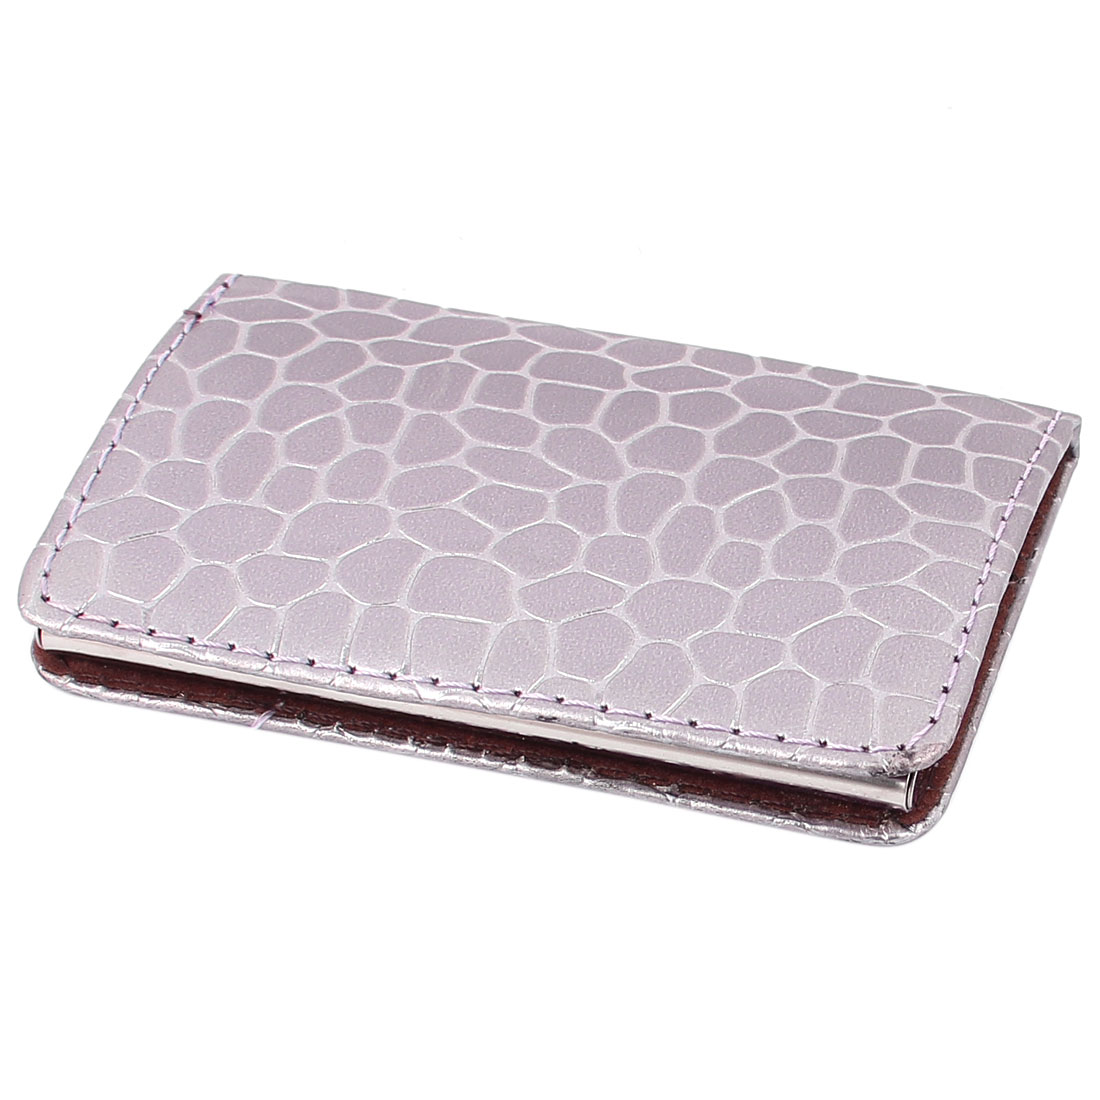 Light Purple Crocodile Pattern Faux Leather Cover Name ID Card Case Holder Organizer